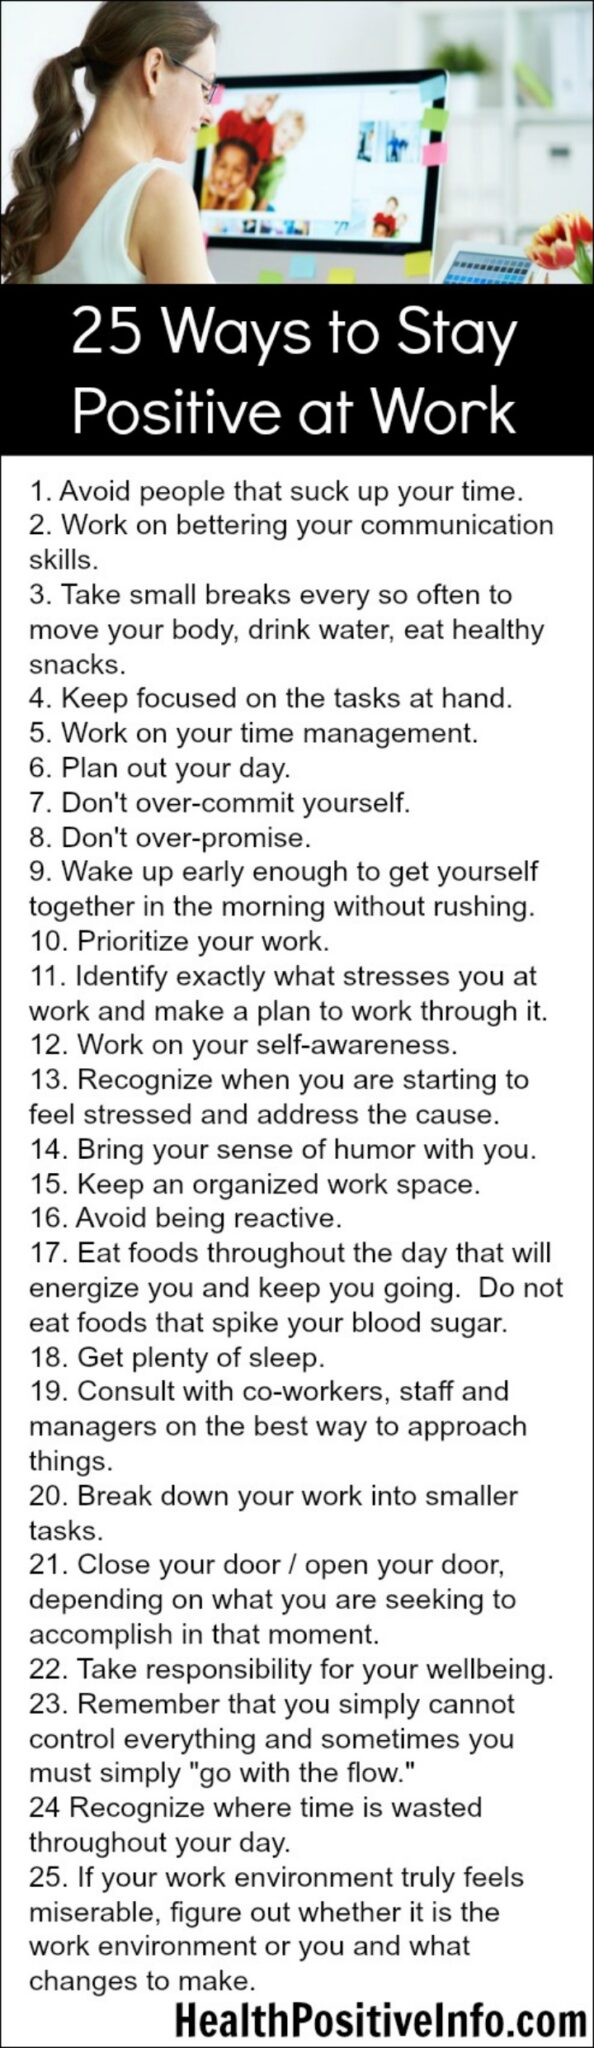 25 Ways to Stay Positive at Work - https://healthpositiveinfo.com/25-ways-to-stay-positive-at-work.html